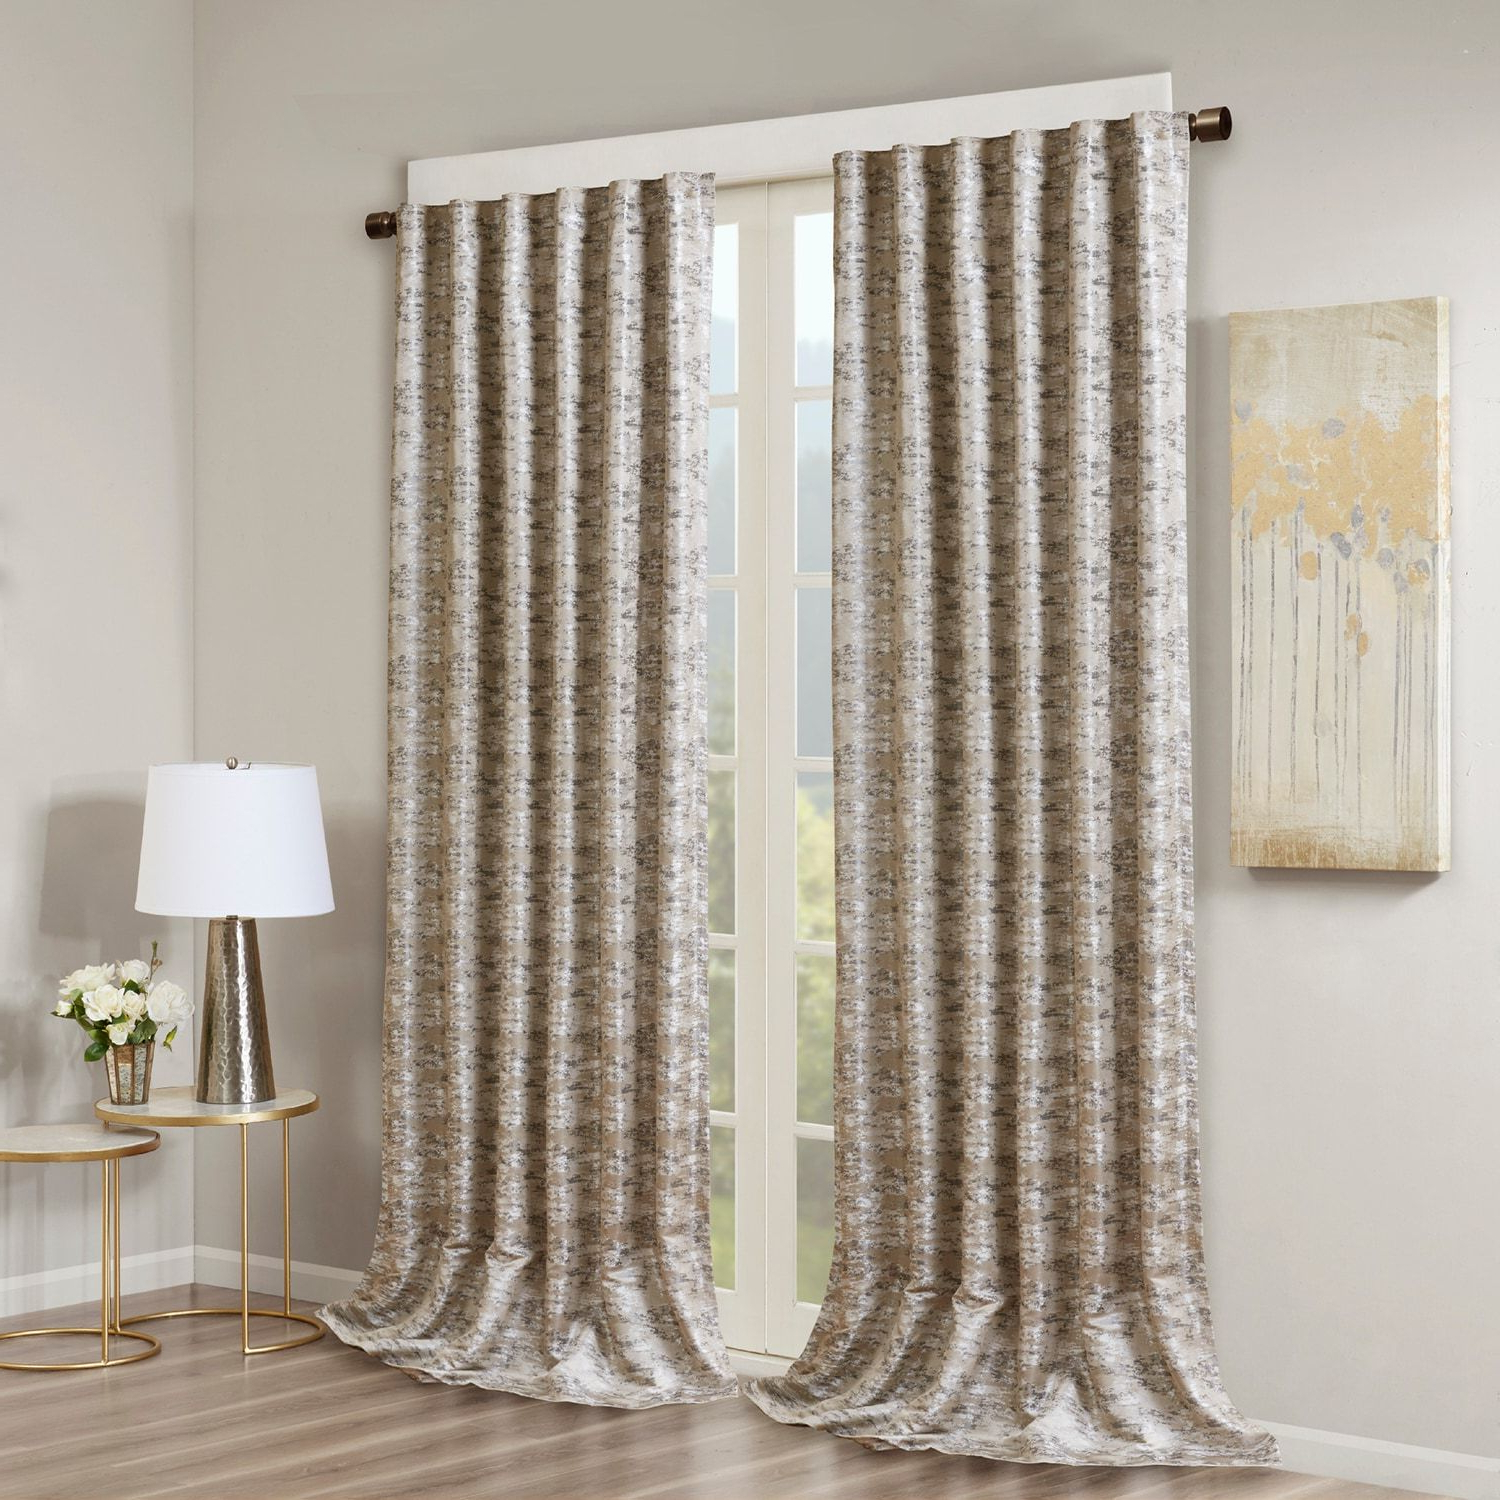 Sunsmart Blackout 1 Panel Odessa Total Window Curtain In With Regard To Widely Used Davis Patio Grommet Top Single Curtain Panels (View 13 of 20)